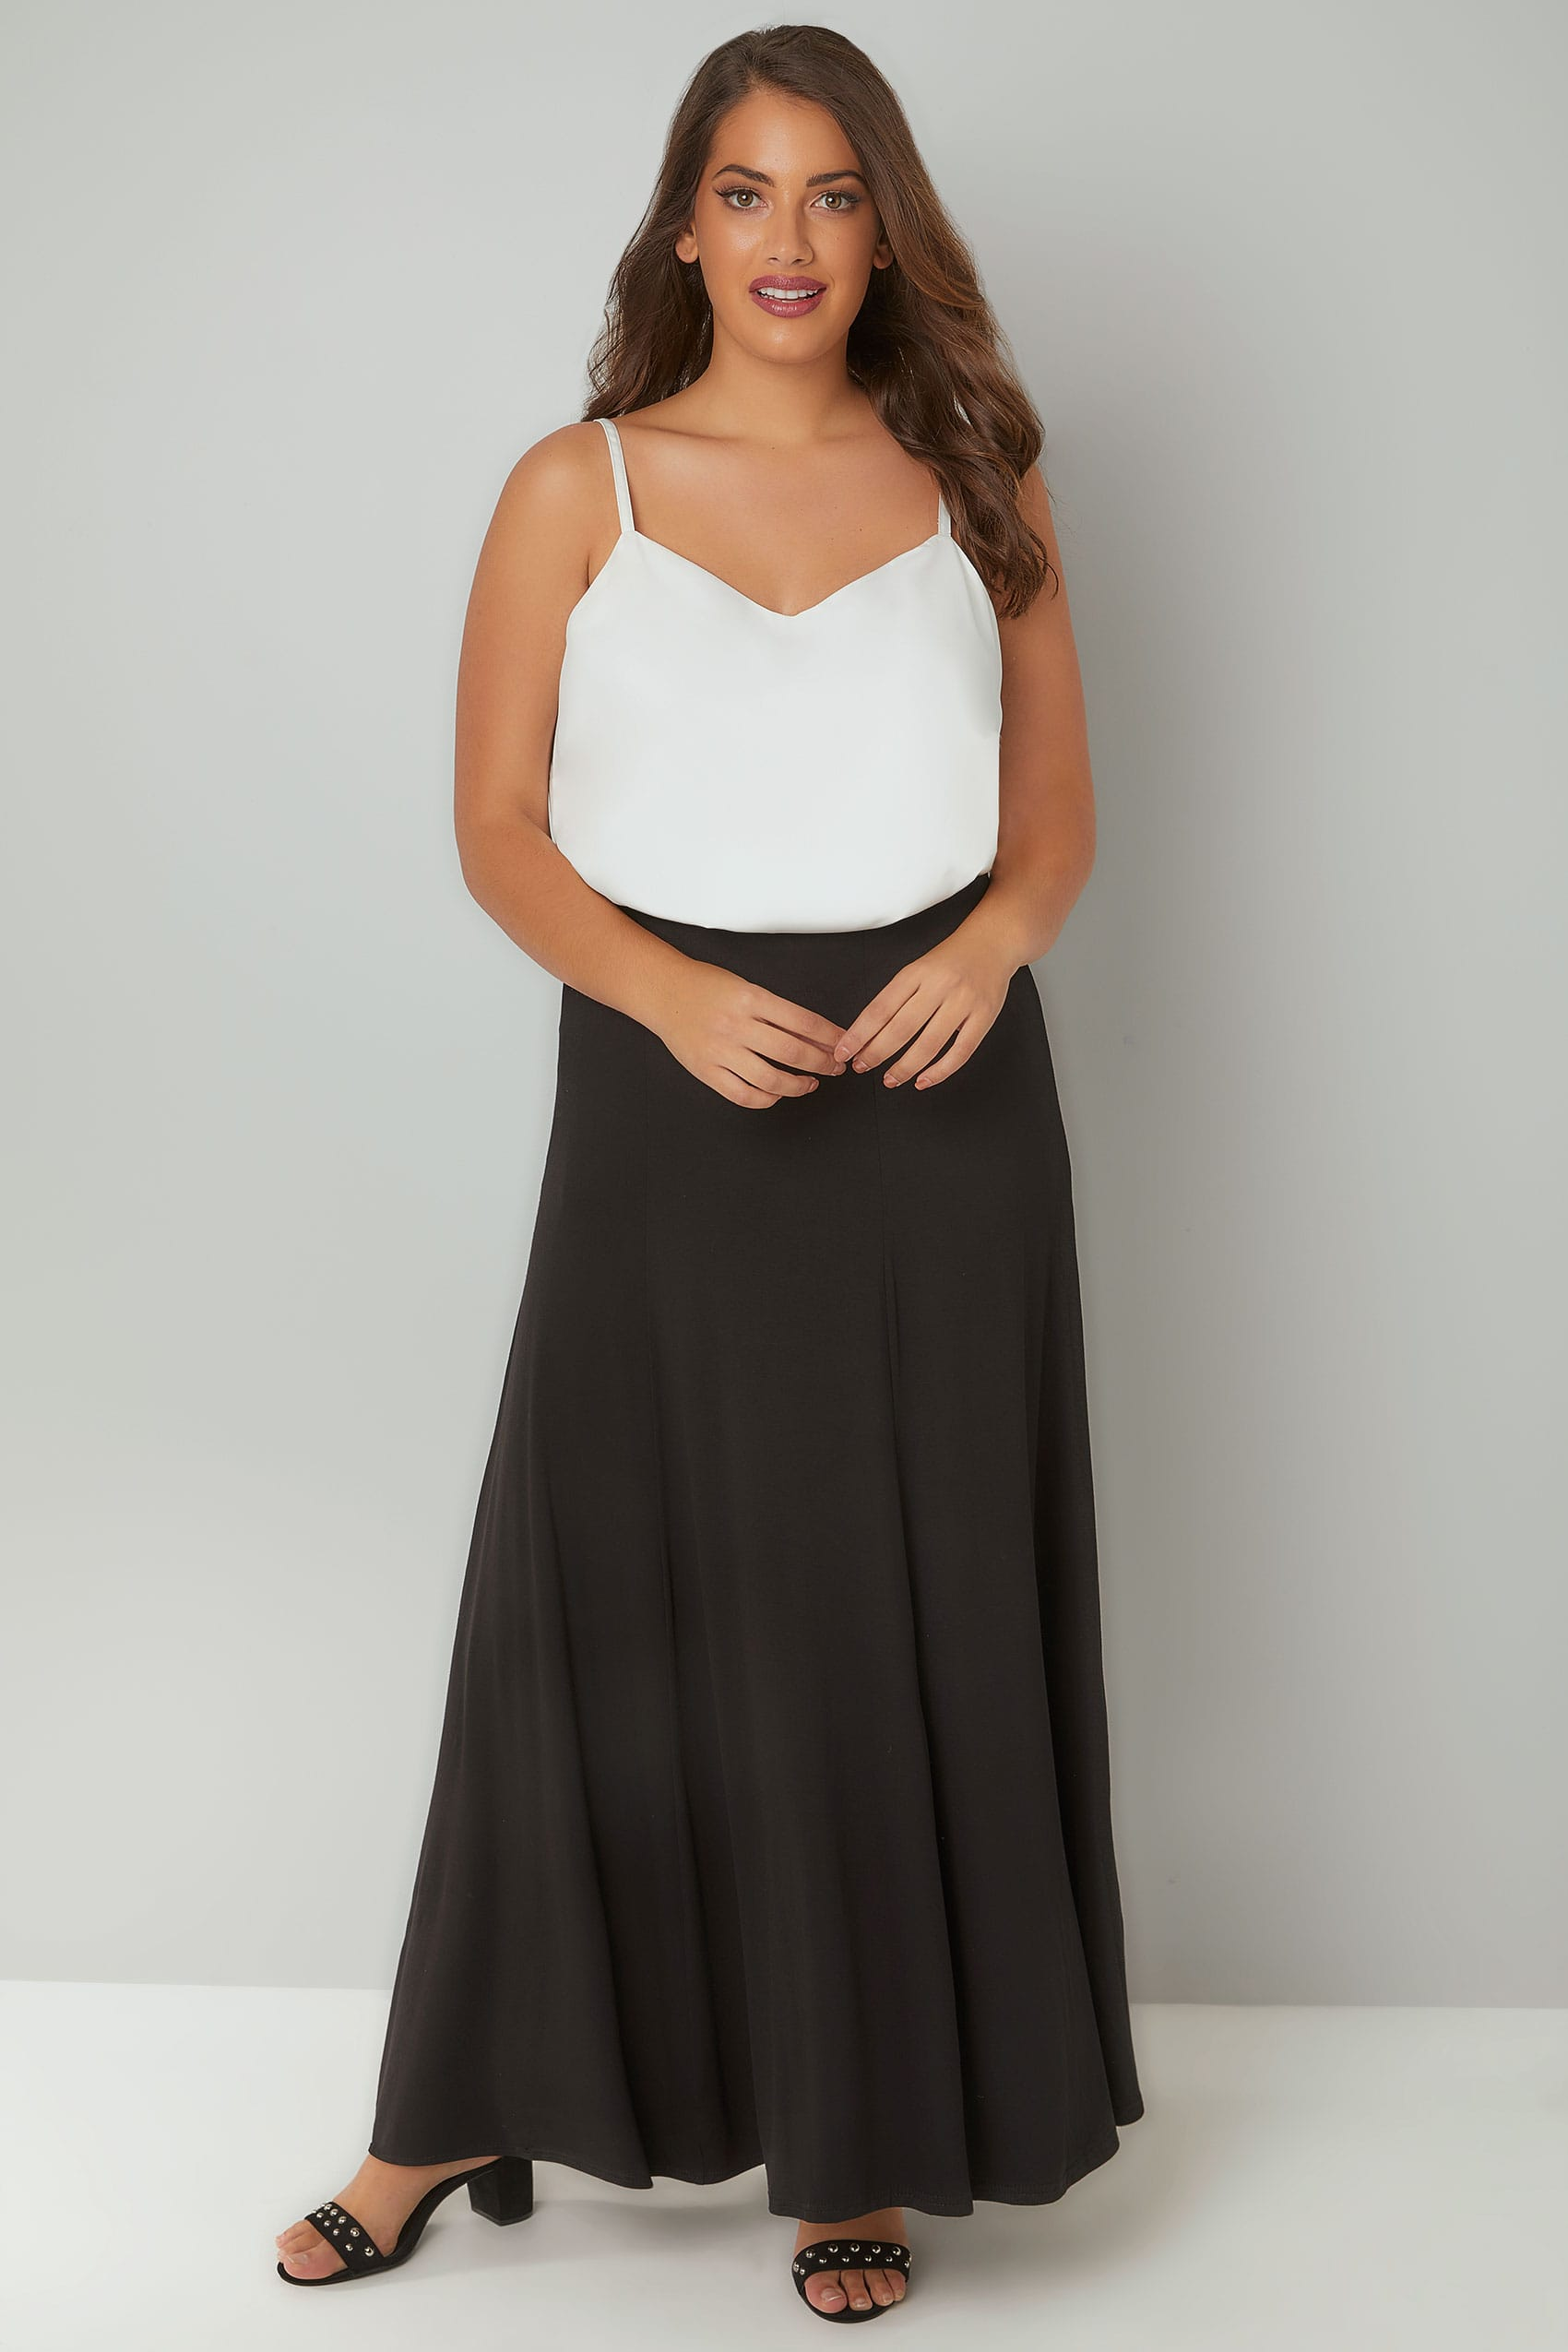 Black Jersey Maxi Skirt, Plus size 16 to 36